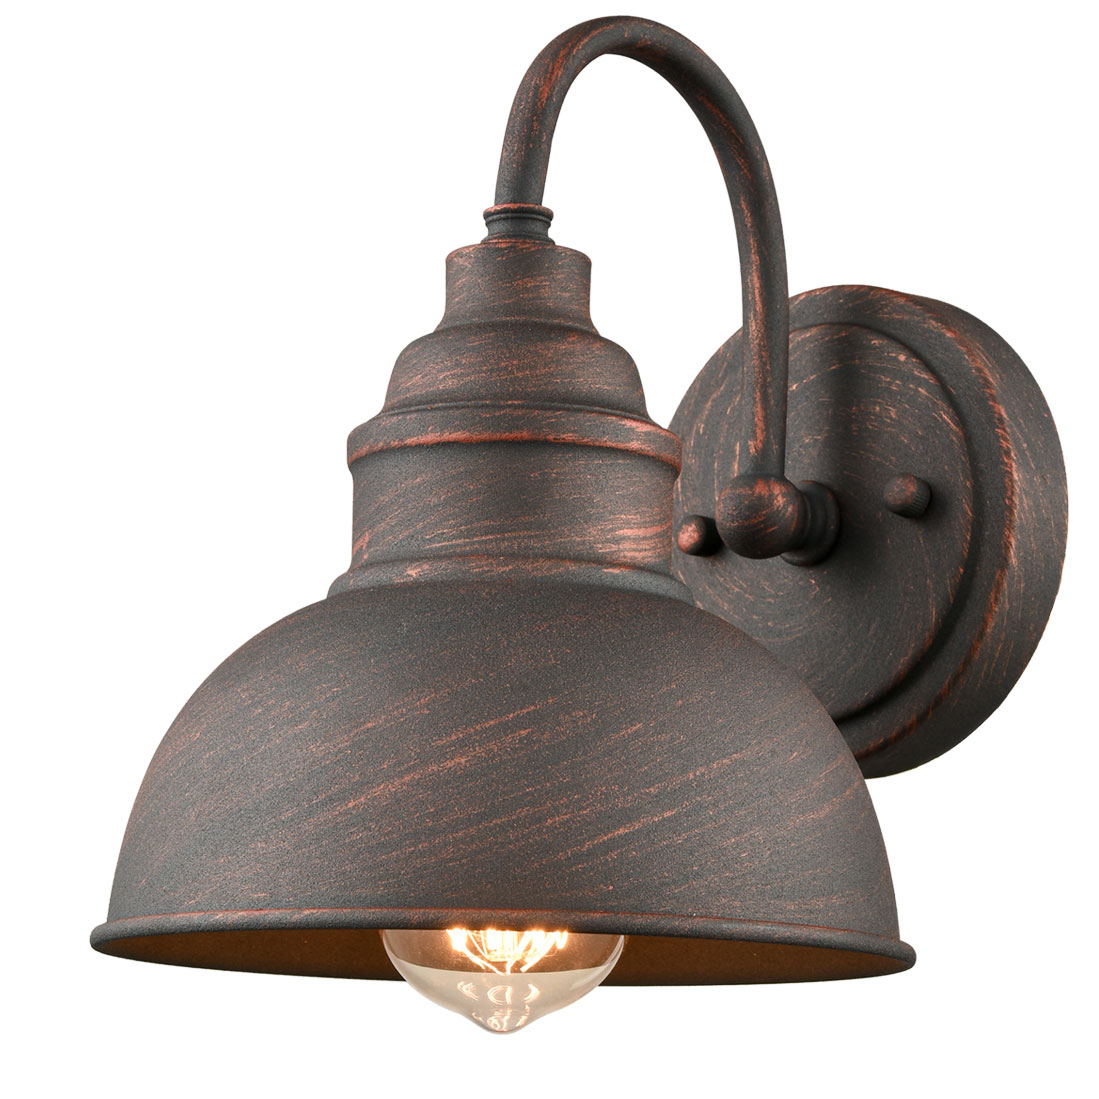 Farmhouse IndoorOutdoor Wall Sconce Metal Barn Light